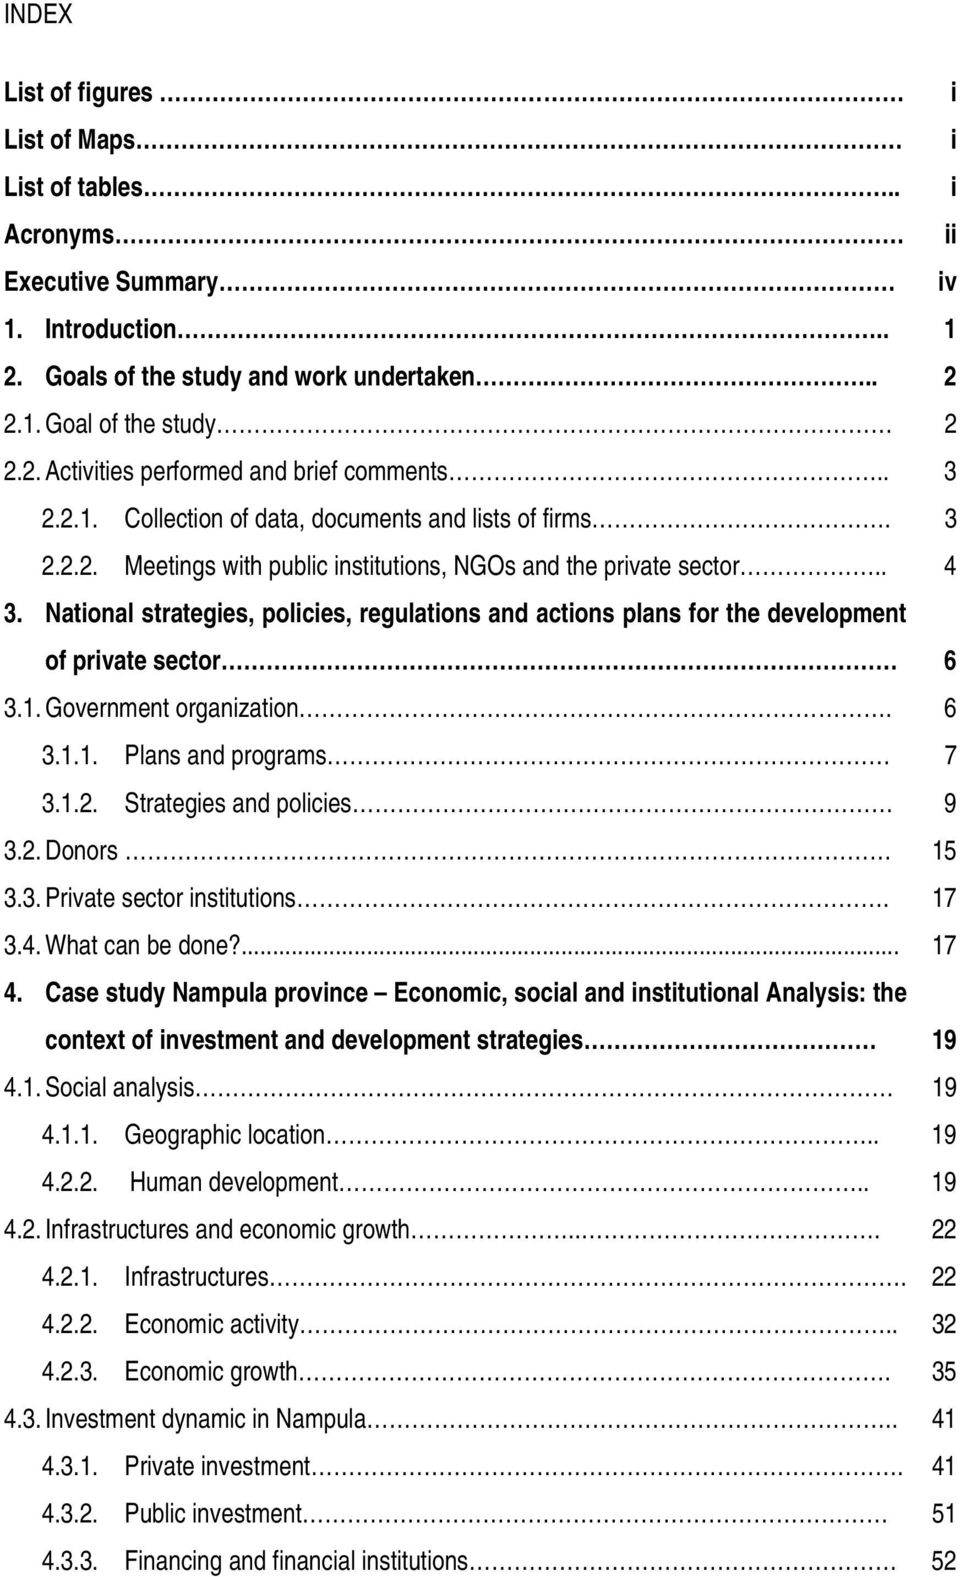 National strategies, policies, regulations and actions plans for the development of private sector 6 3.1. Government organization. 6 3.1.1. Plans and programs 7 3.1.2. Strategies and policies 9 3.2. Donors 15 3.